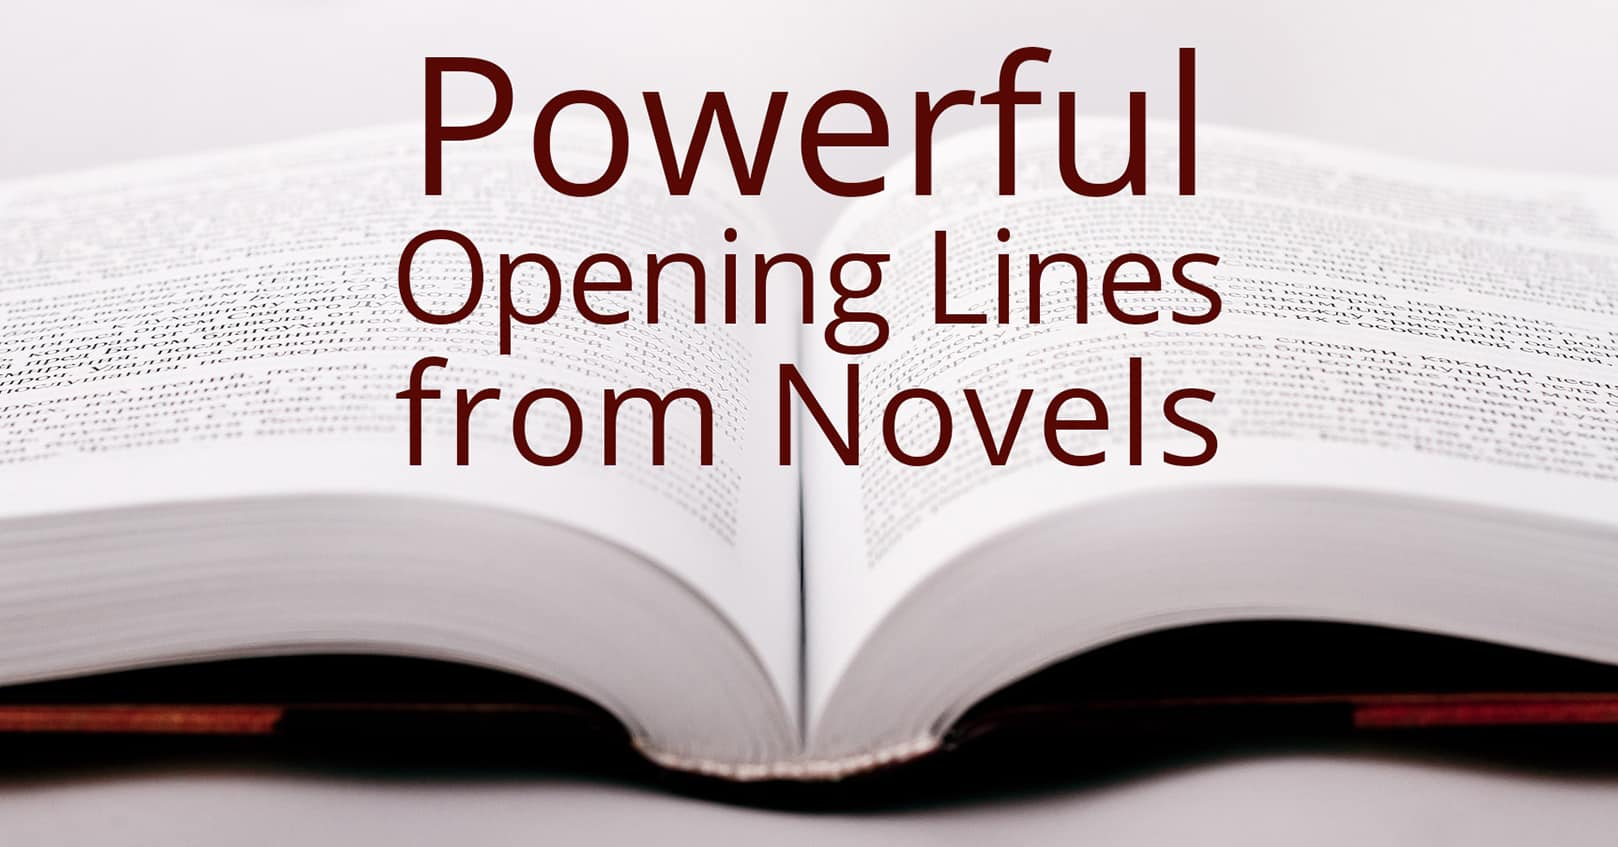 Powerful Opening Lines from Novels